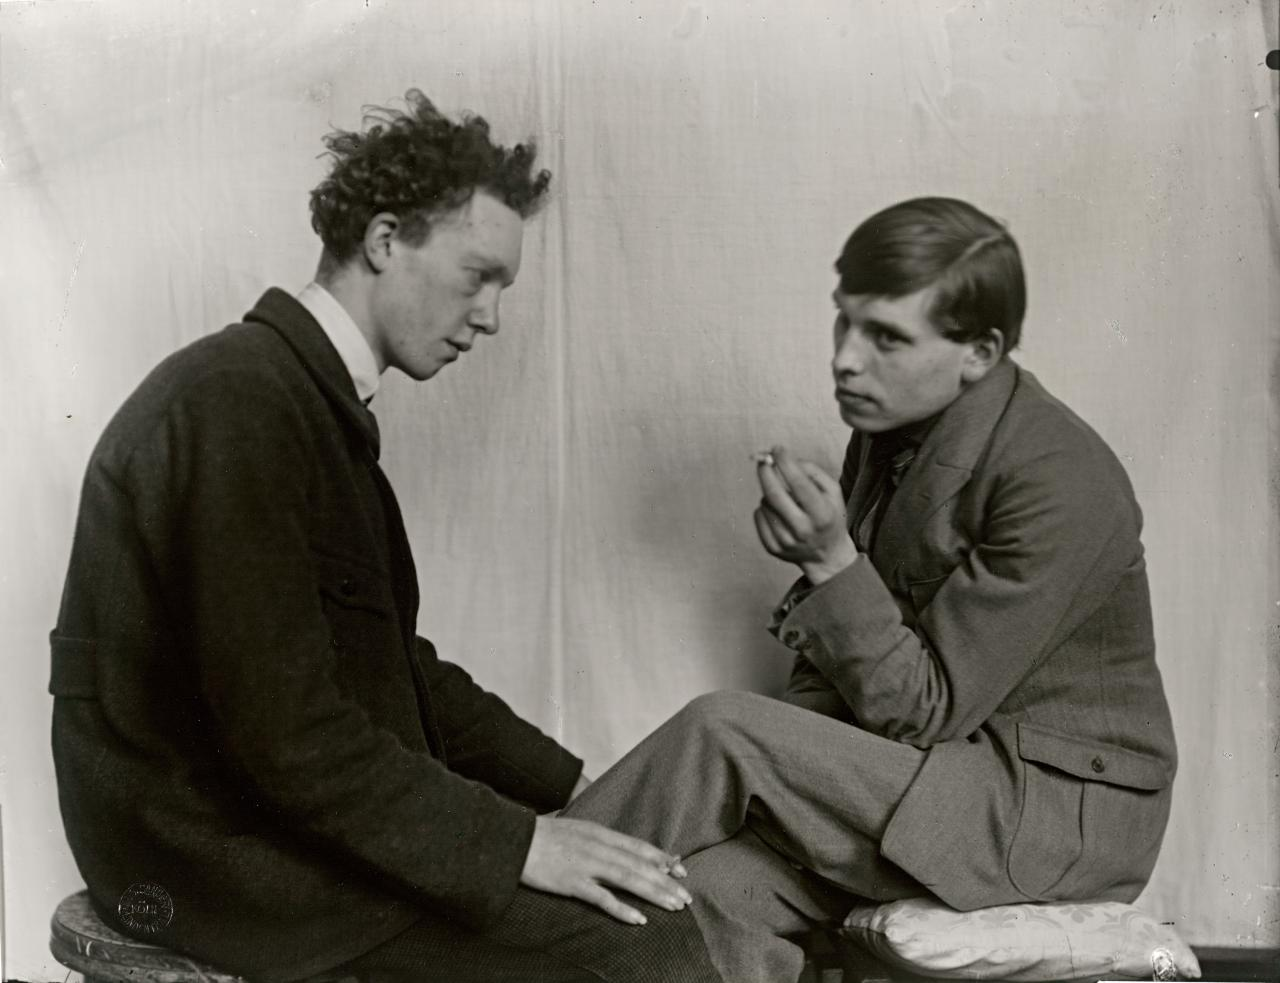 The painters Gottfried Brockman and Willi Bongard, Cologne, 1924